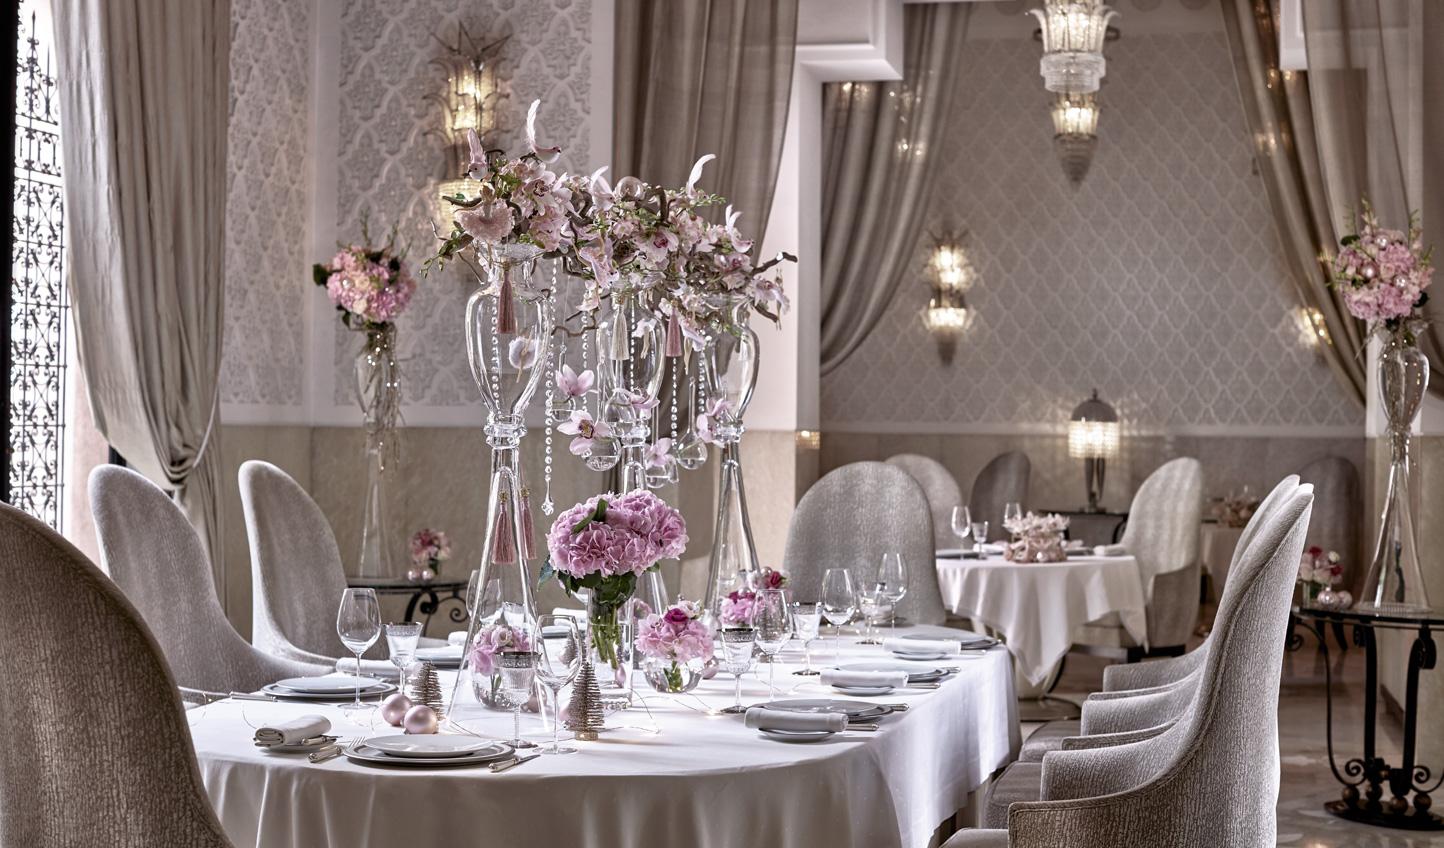 Elegant and refined cuisine at La Grande Table Francaise